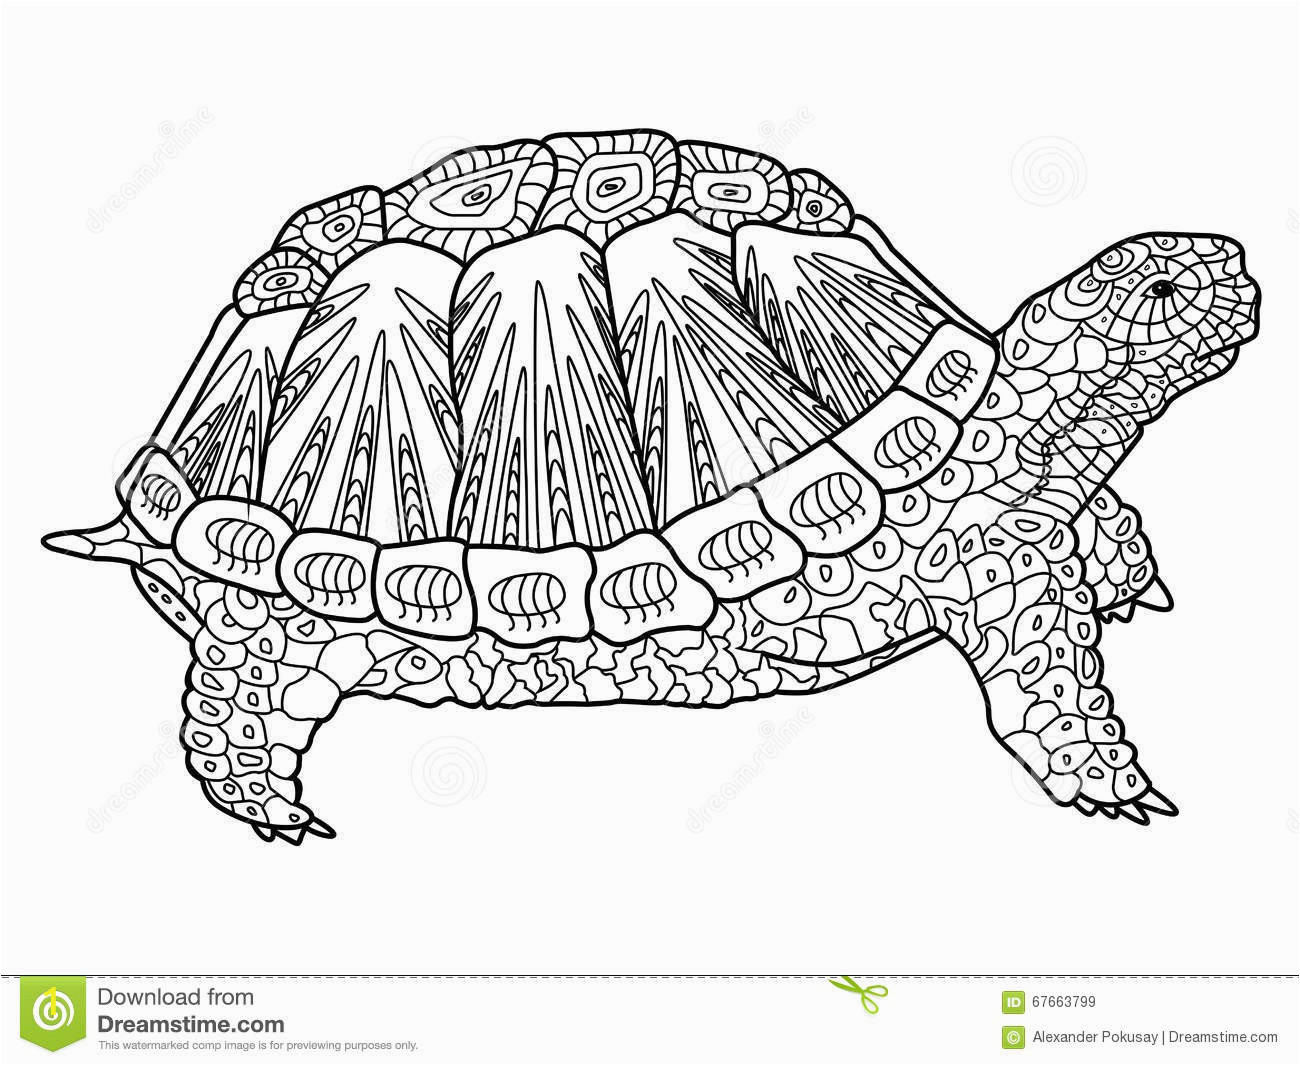 turtle coloring book adults vector illustration anti stress adult zentangle style black white lines lace